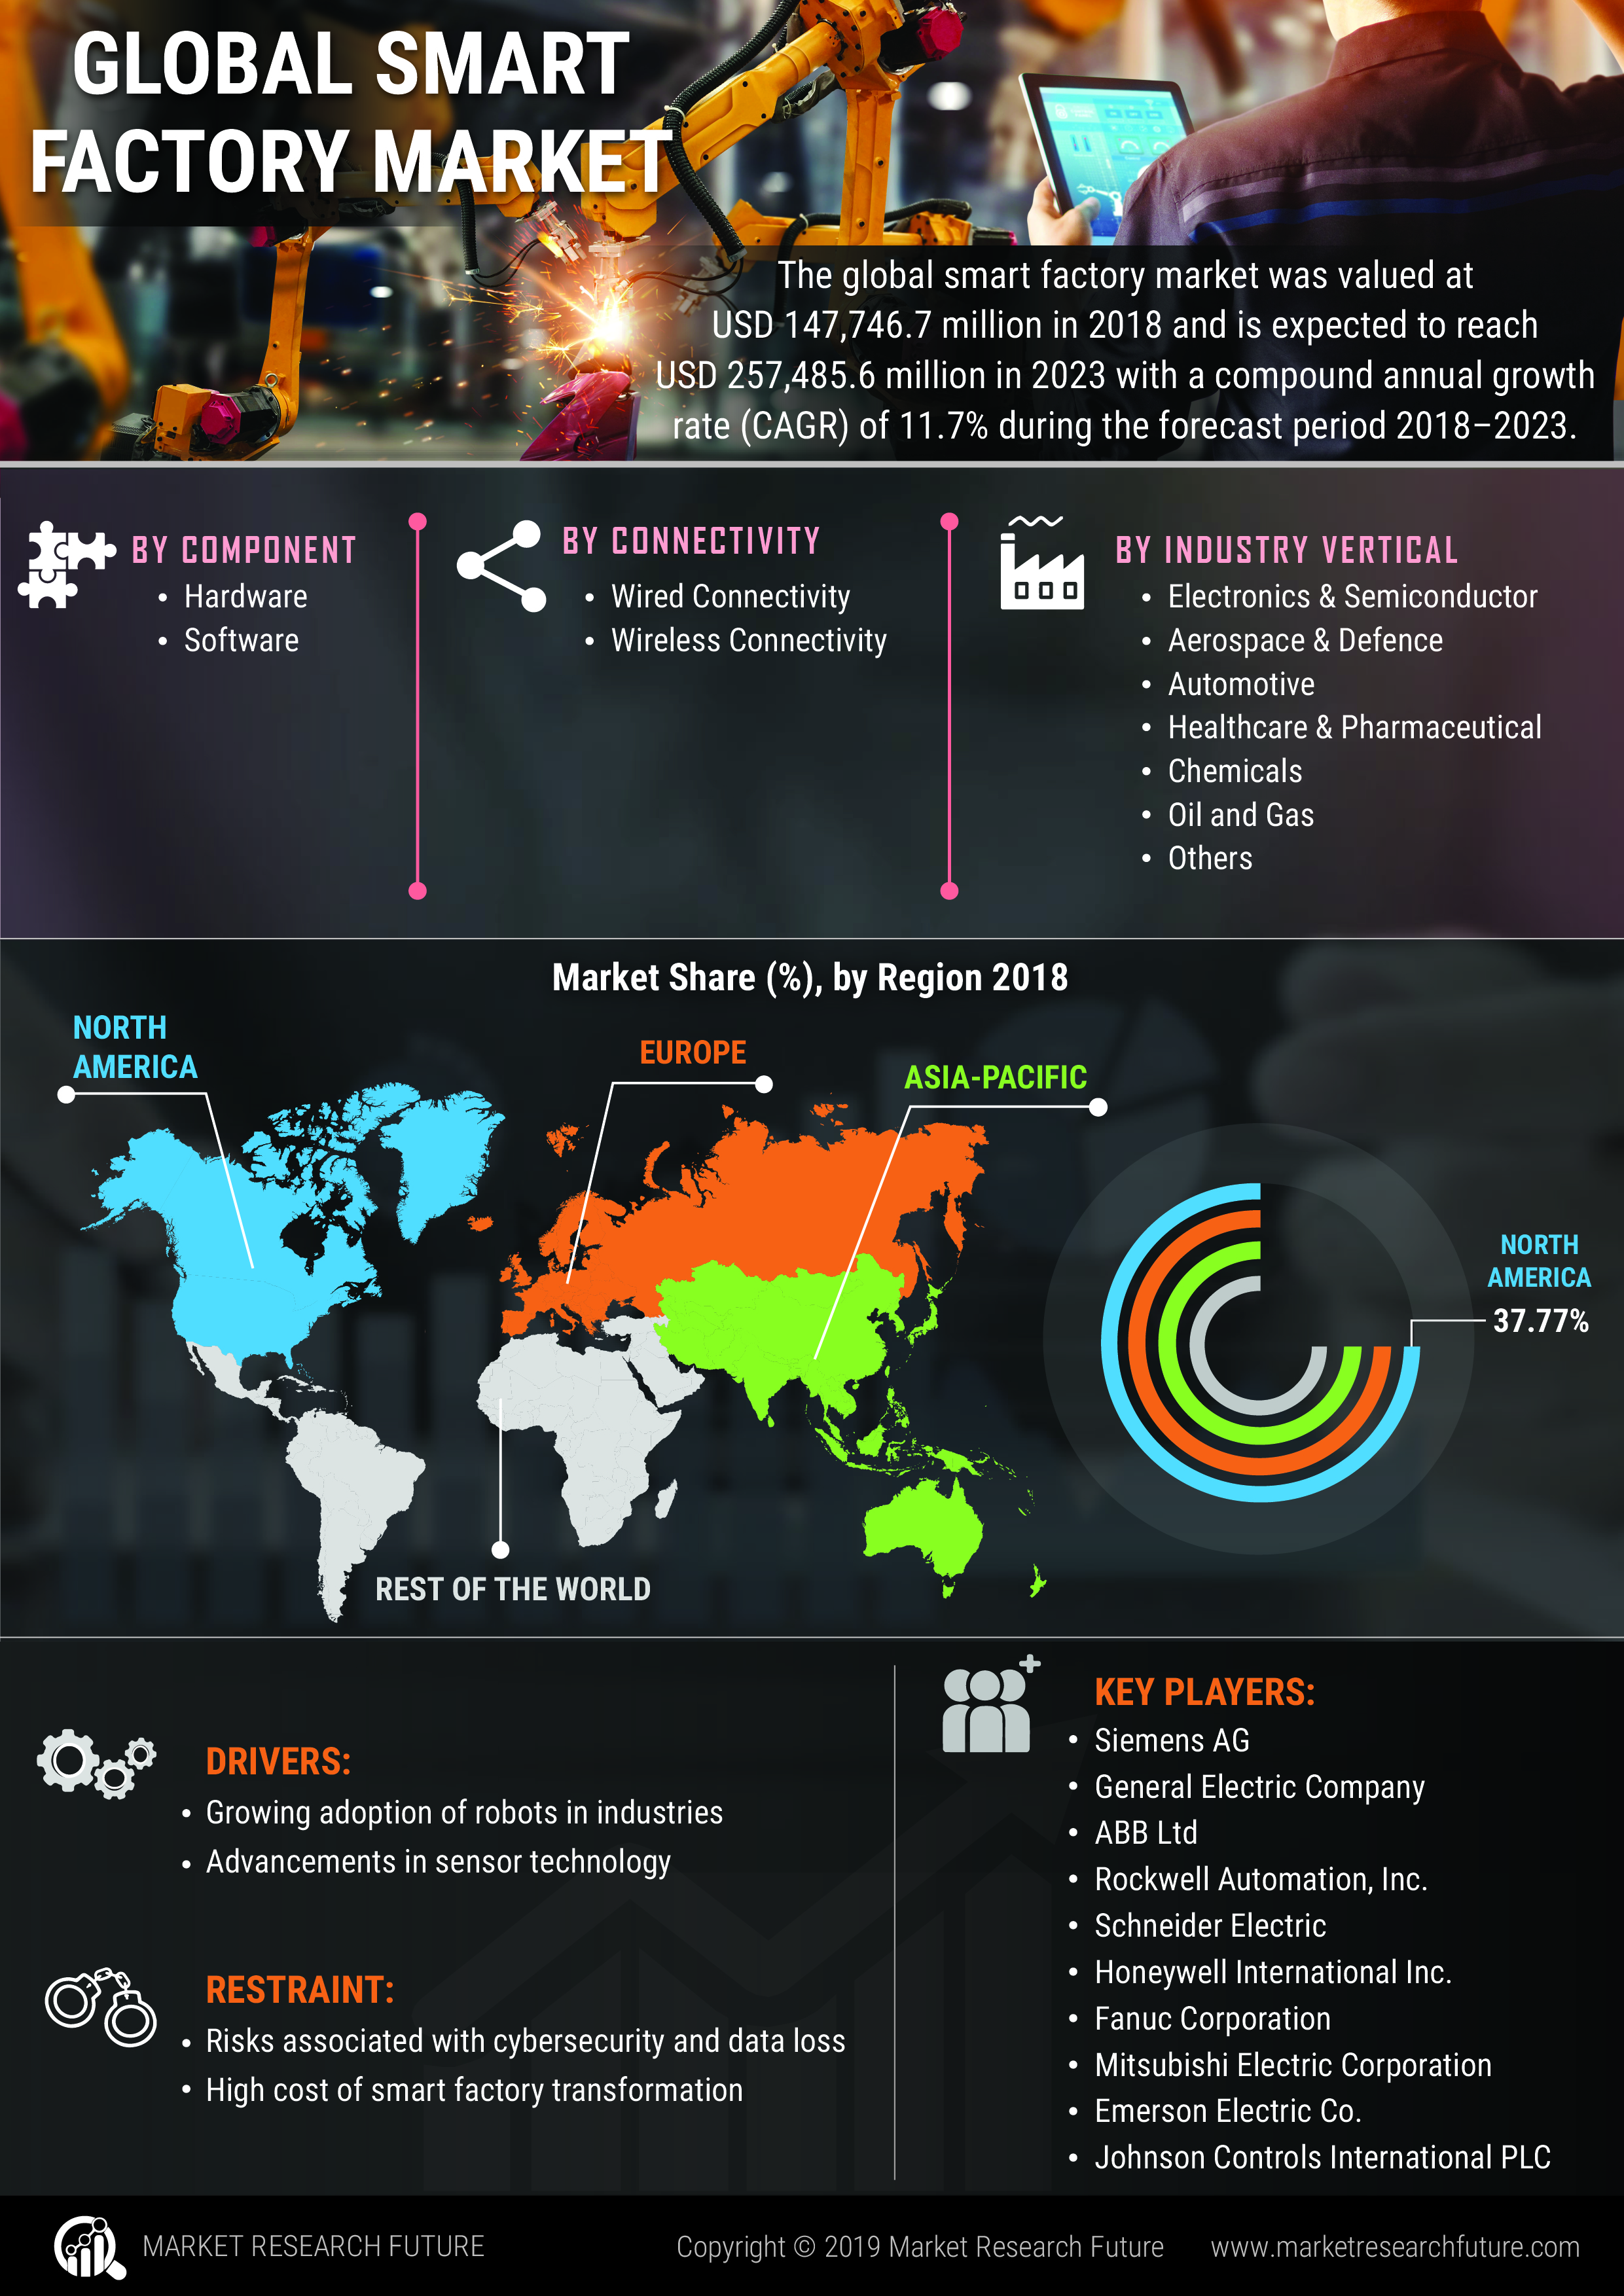 Smart Factory Market SWOT Analysis and Competitive Landscape By 2023 With Worldwide Overview By Size, Share, Global Leaders, Drivers-Restraints, Major Segments and Regional Trends